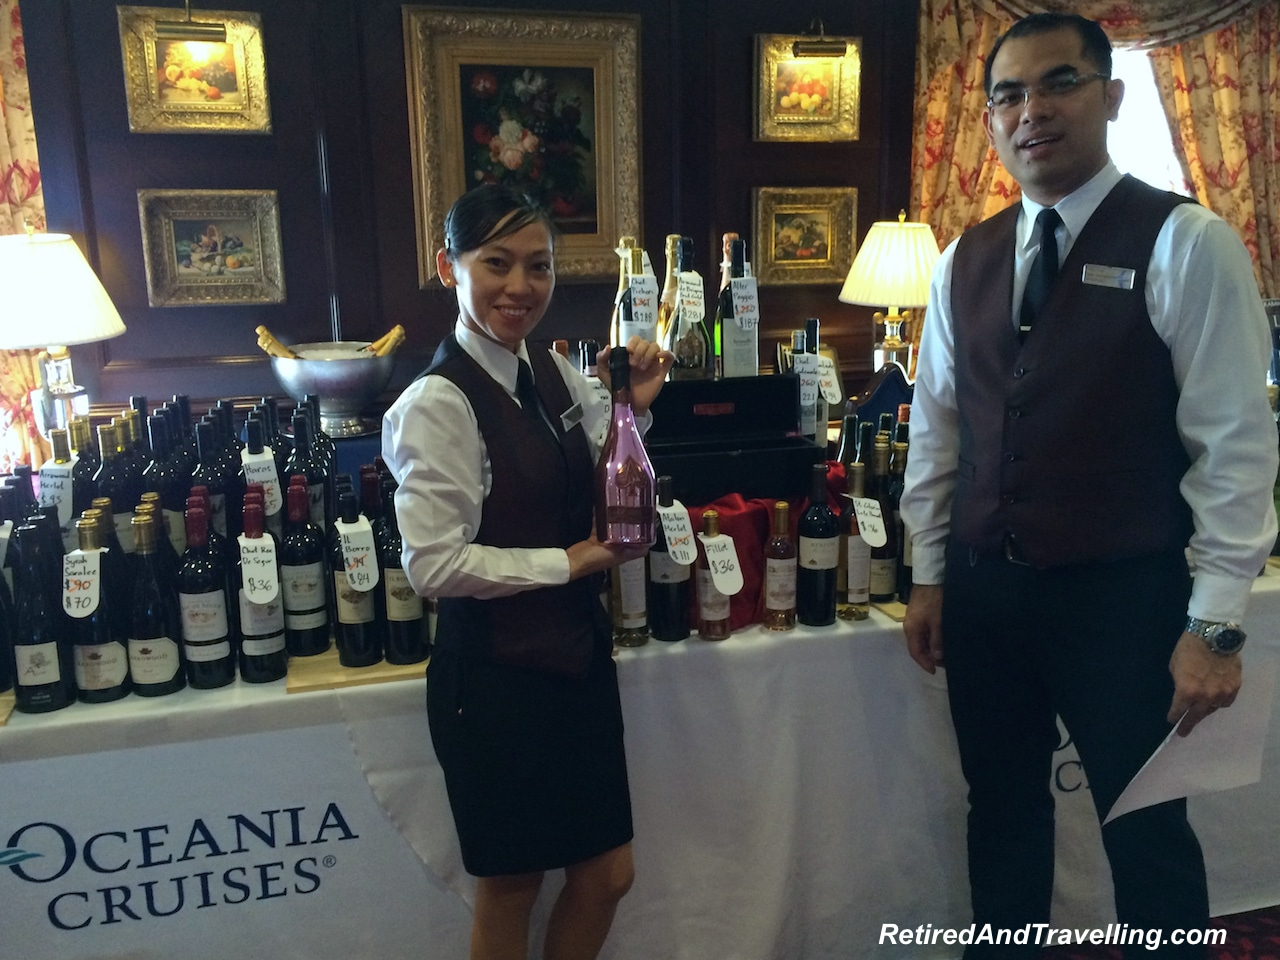 Oceania Cruises Wine Sale - Italian Wine Tasting At Sea.jpg